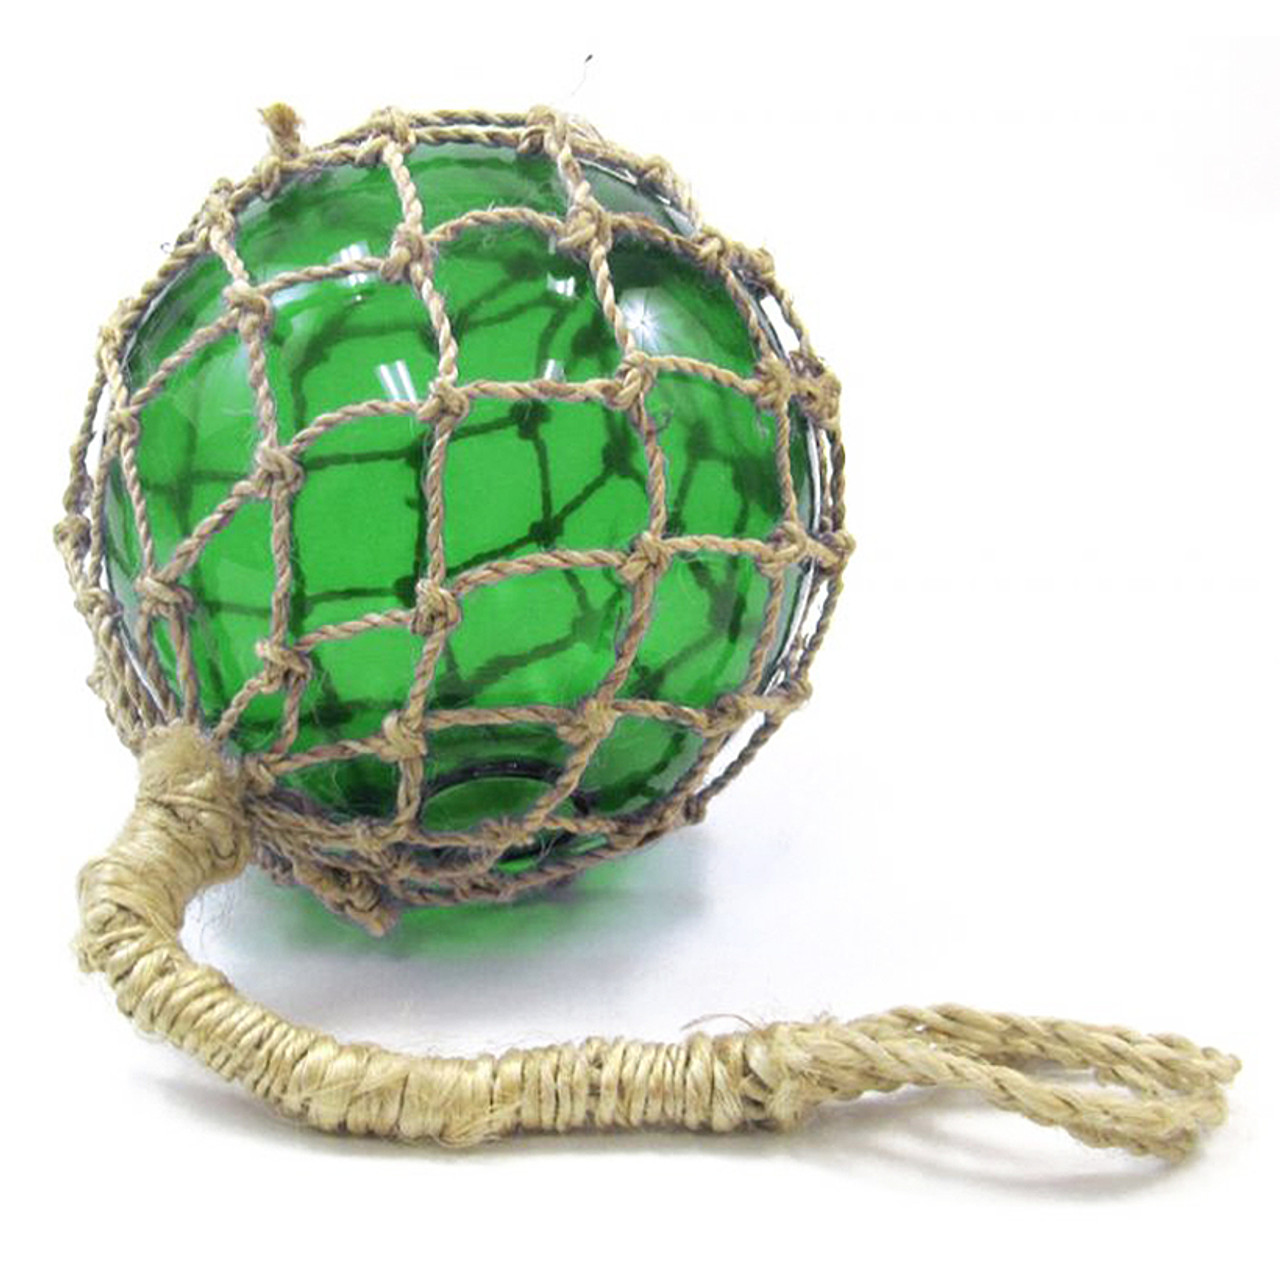 "Glass Fishing Float Green 8"" w/ Rope Decorative Reproduction Wall Decor"